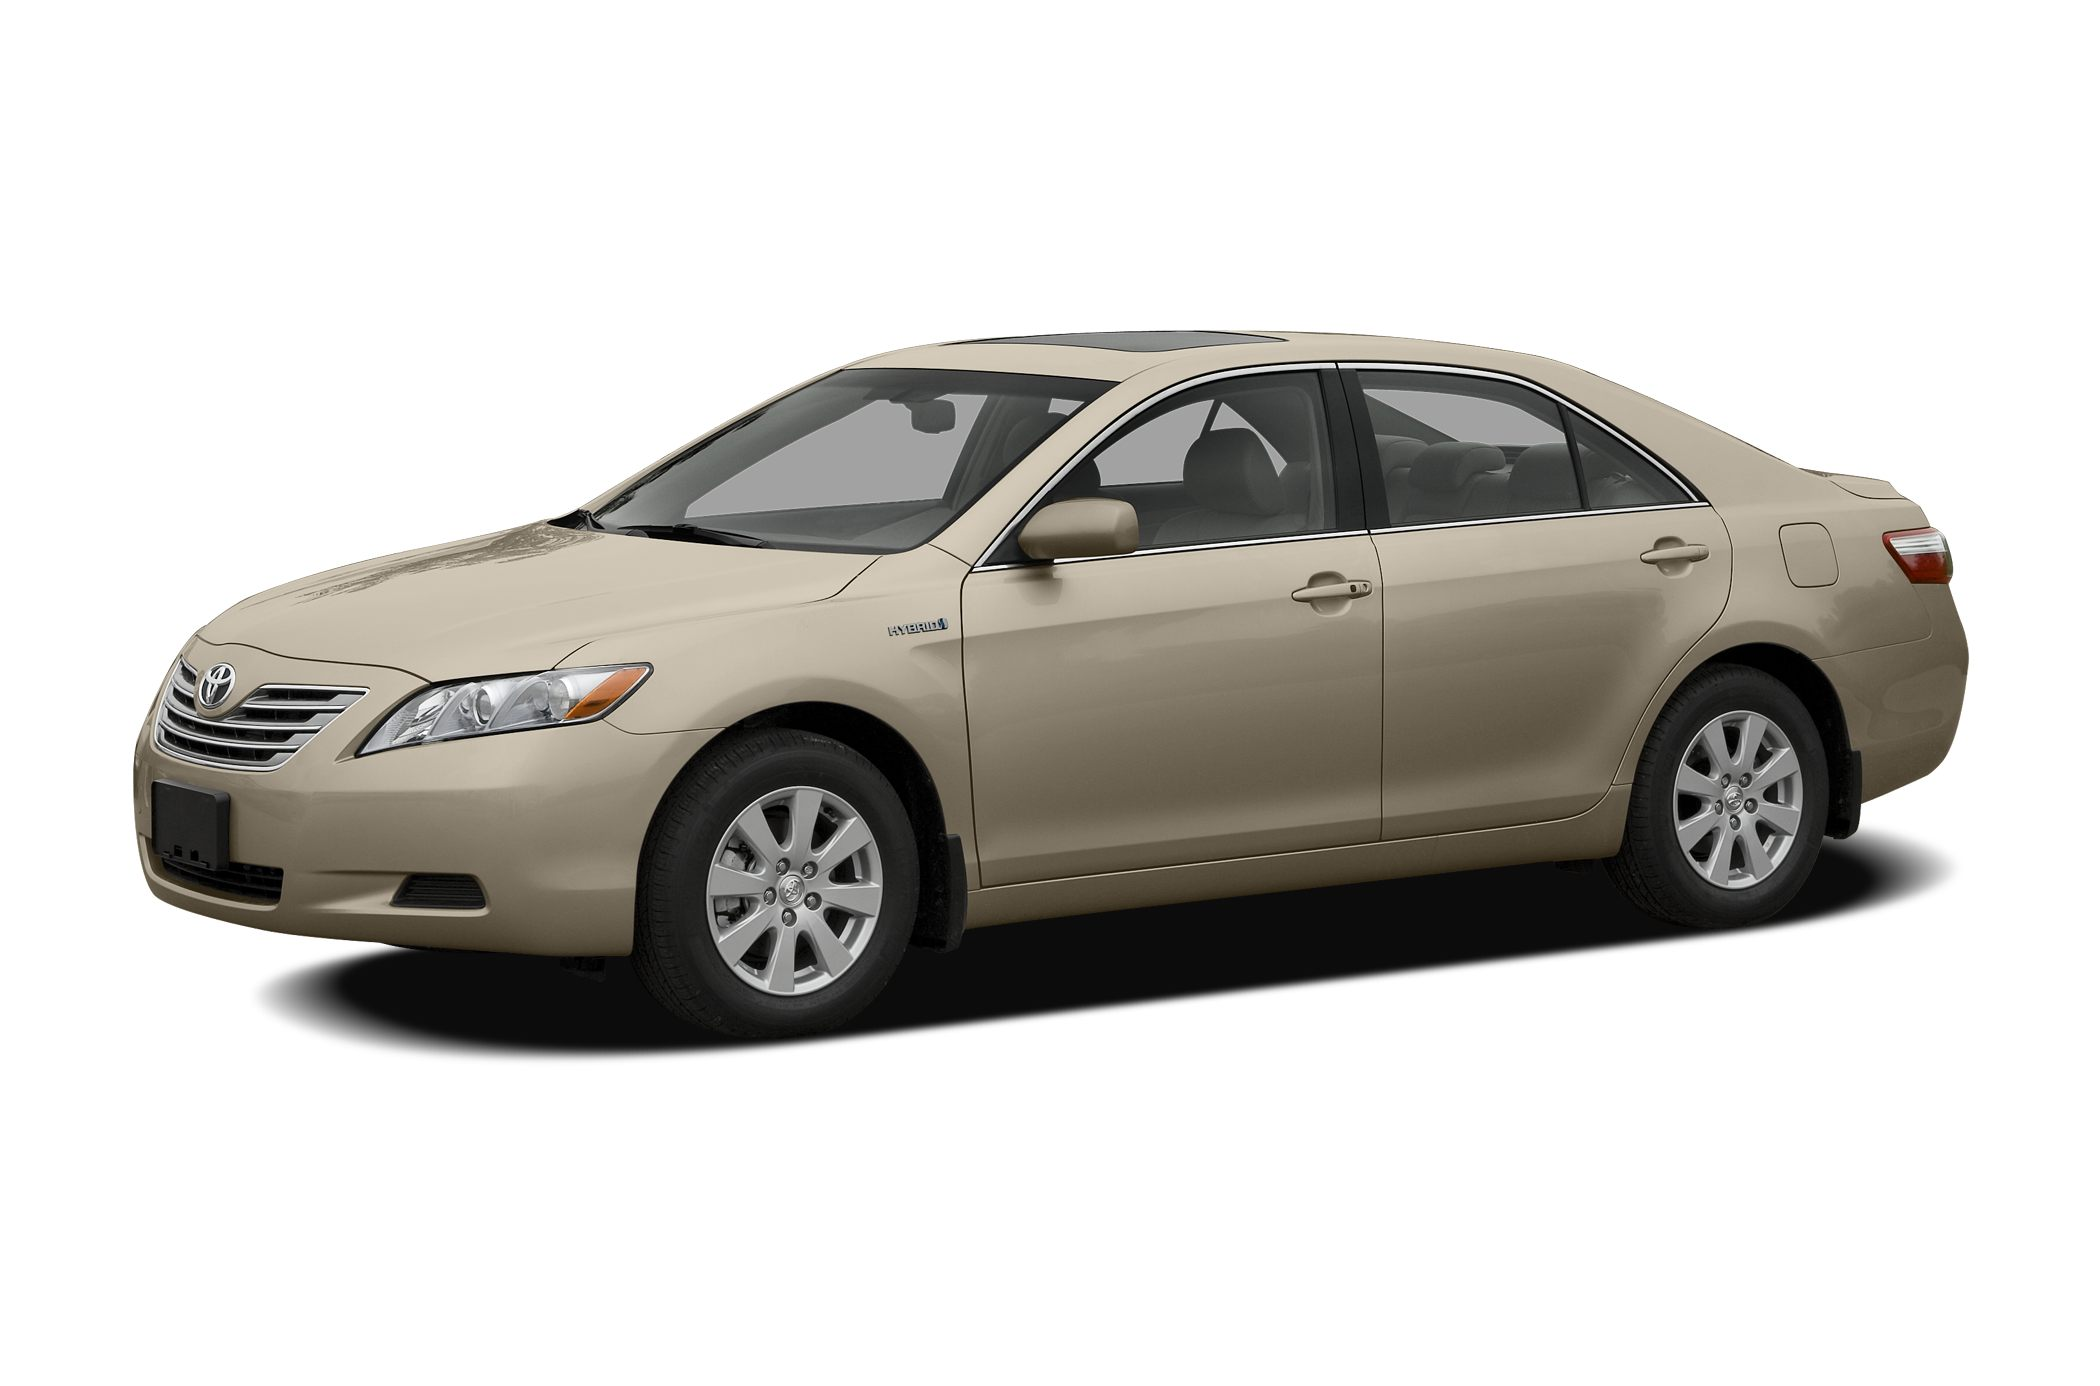 2008 Toyota Camry Hybrid Sedan for sale in Florence for $0 with 170,270 miles